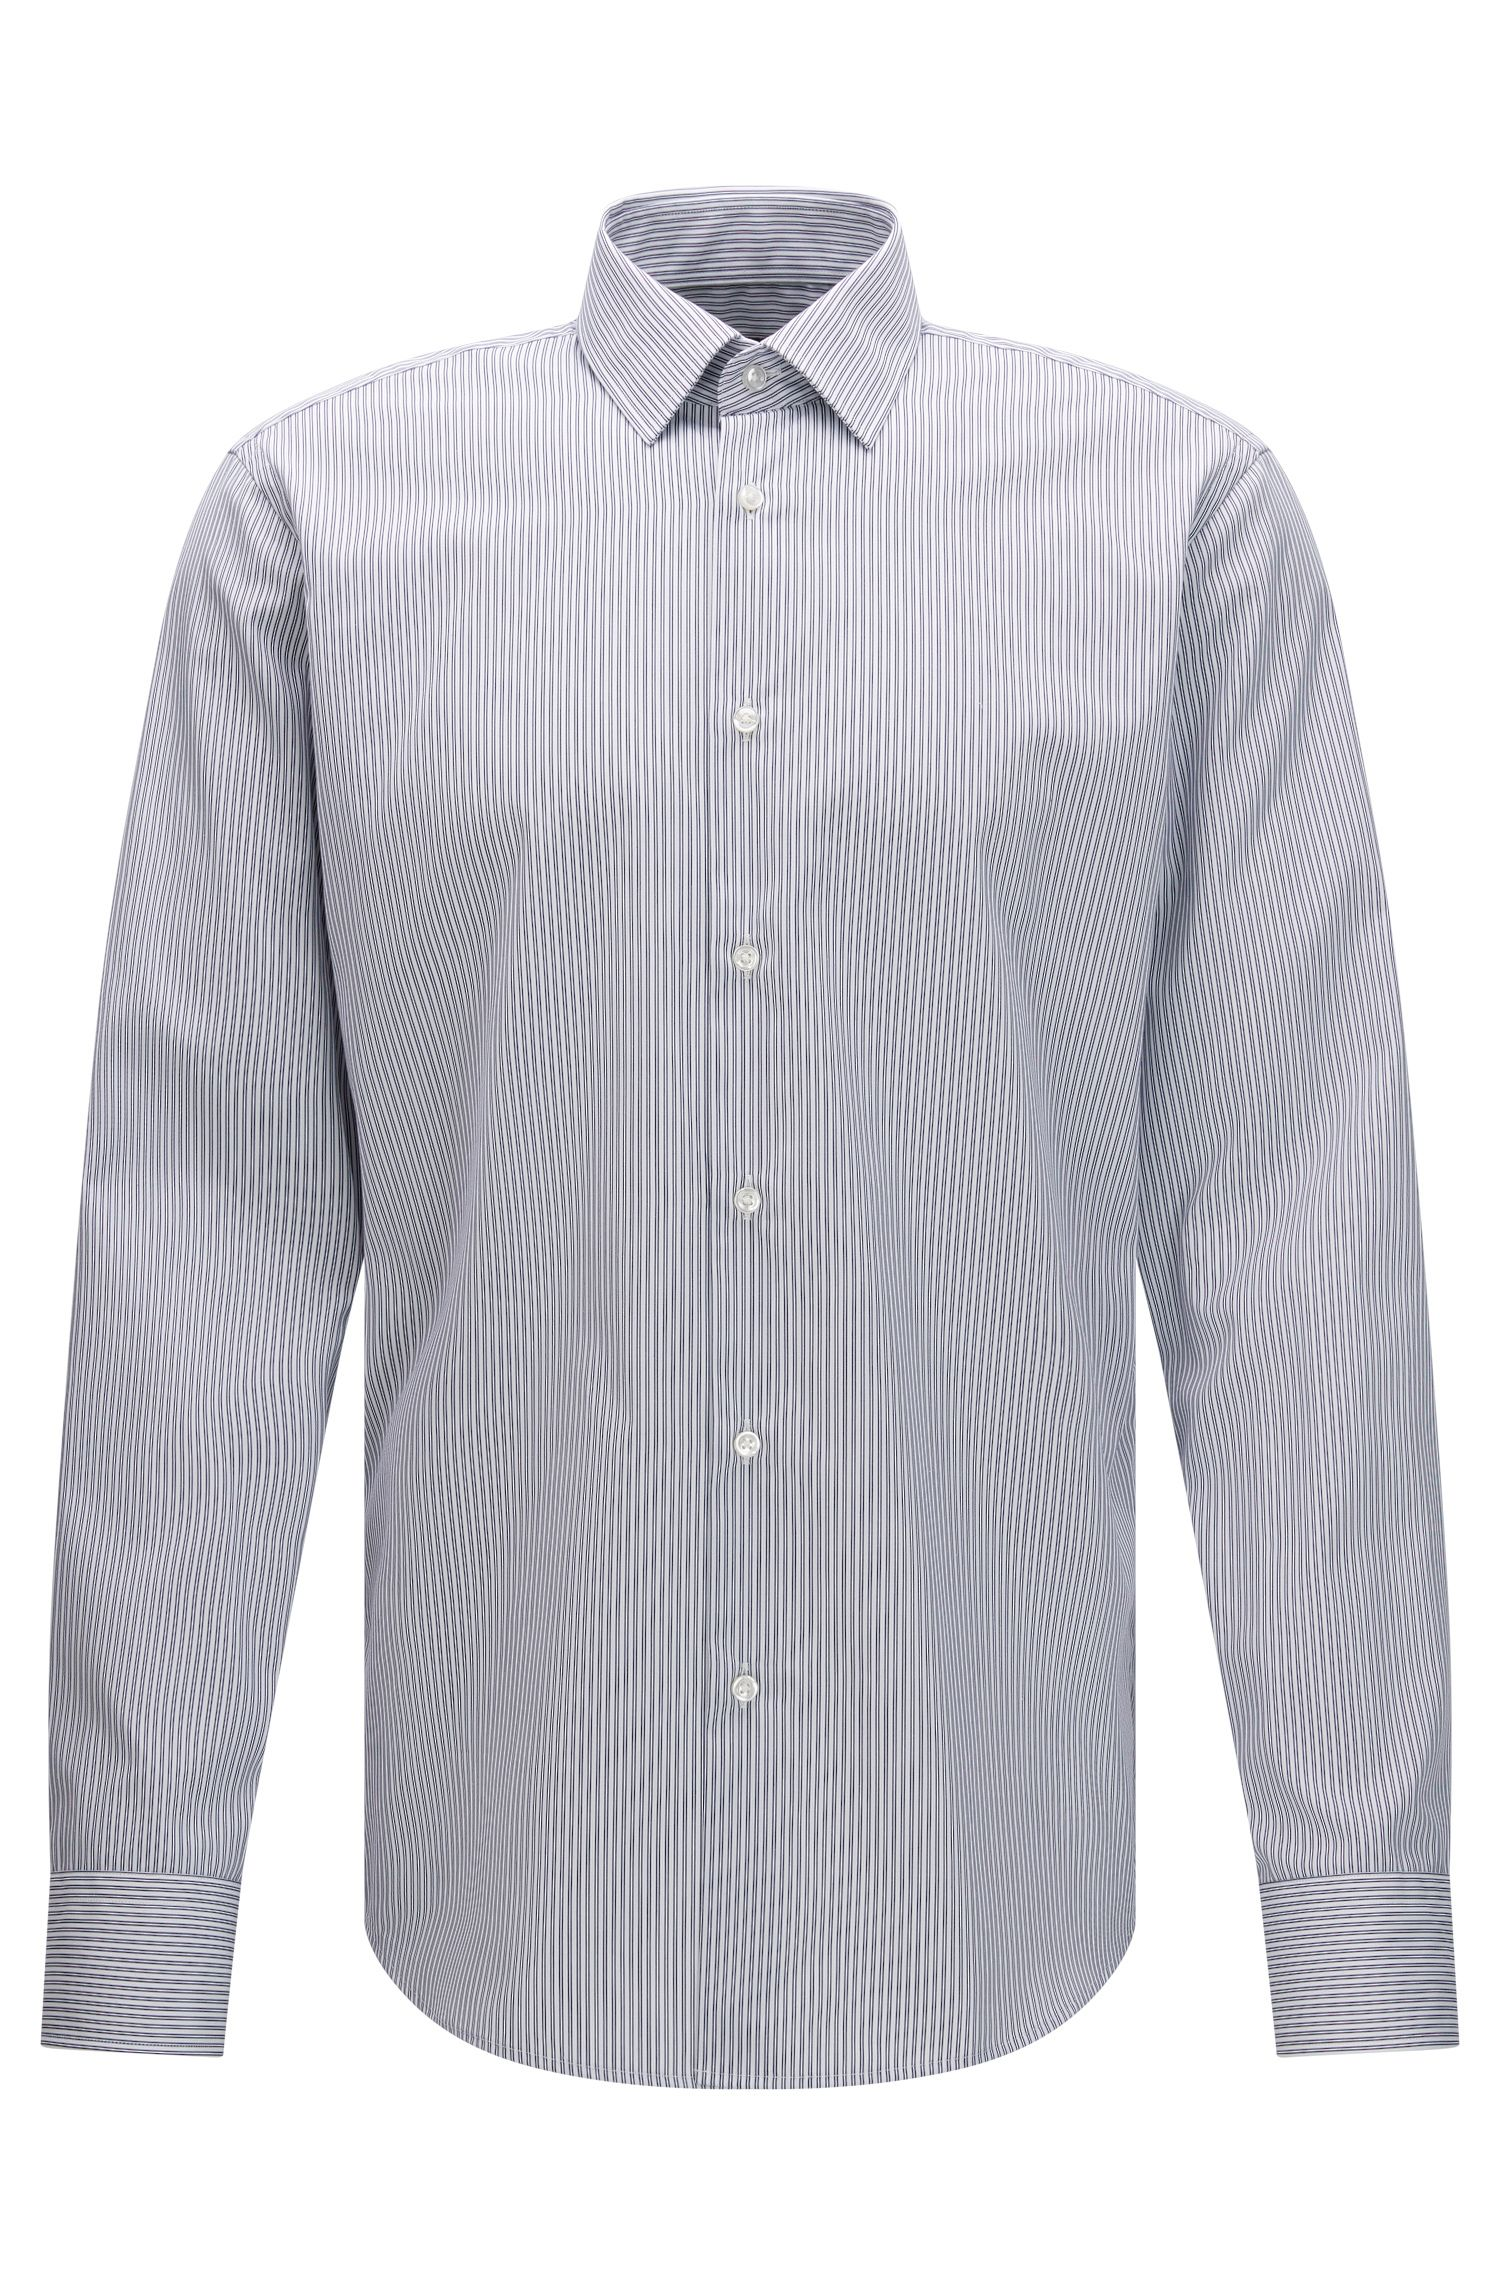 Easy Iron Cotton Dress Shirt, Regular Fit | Enzo